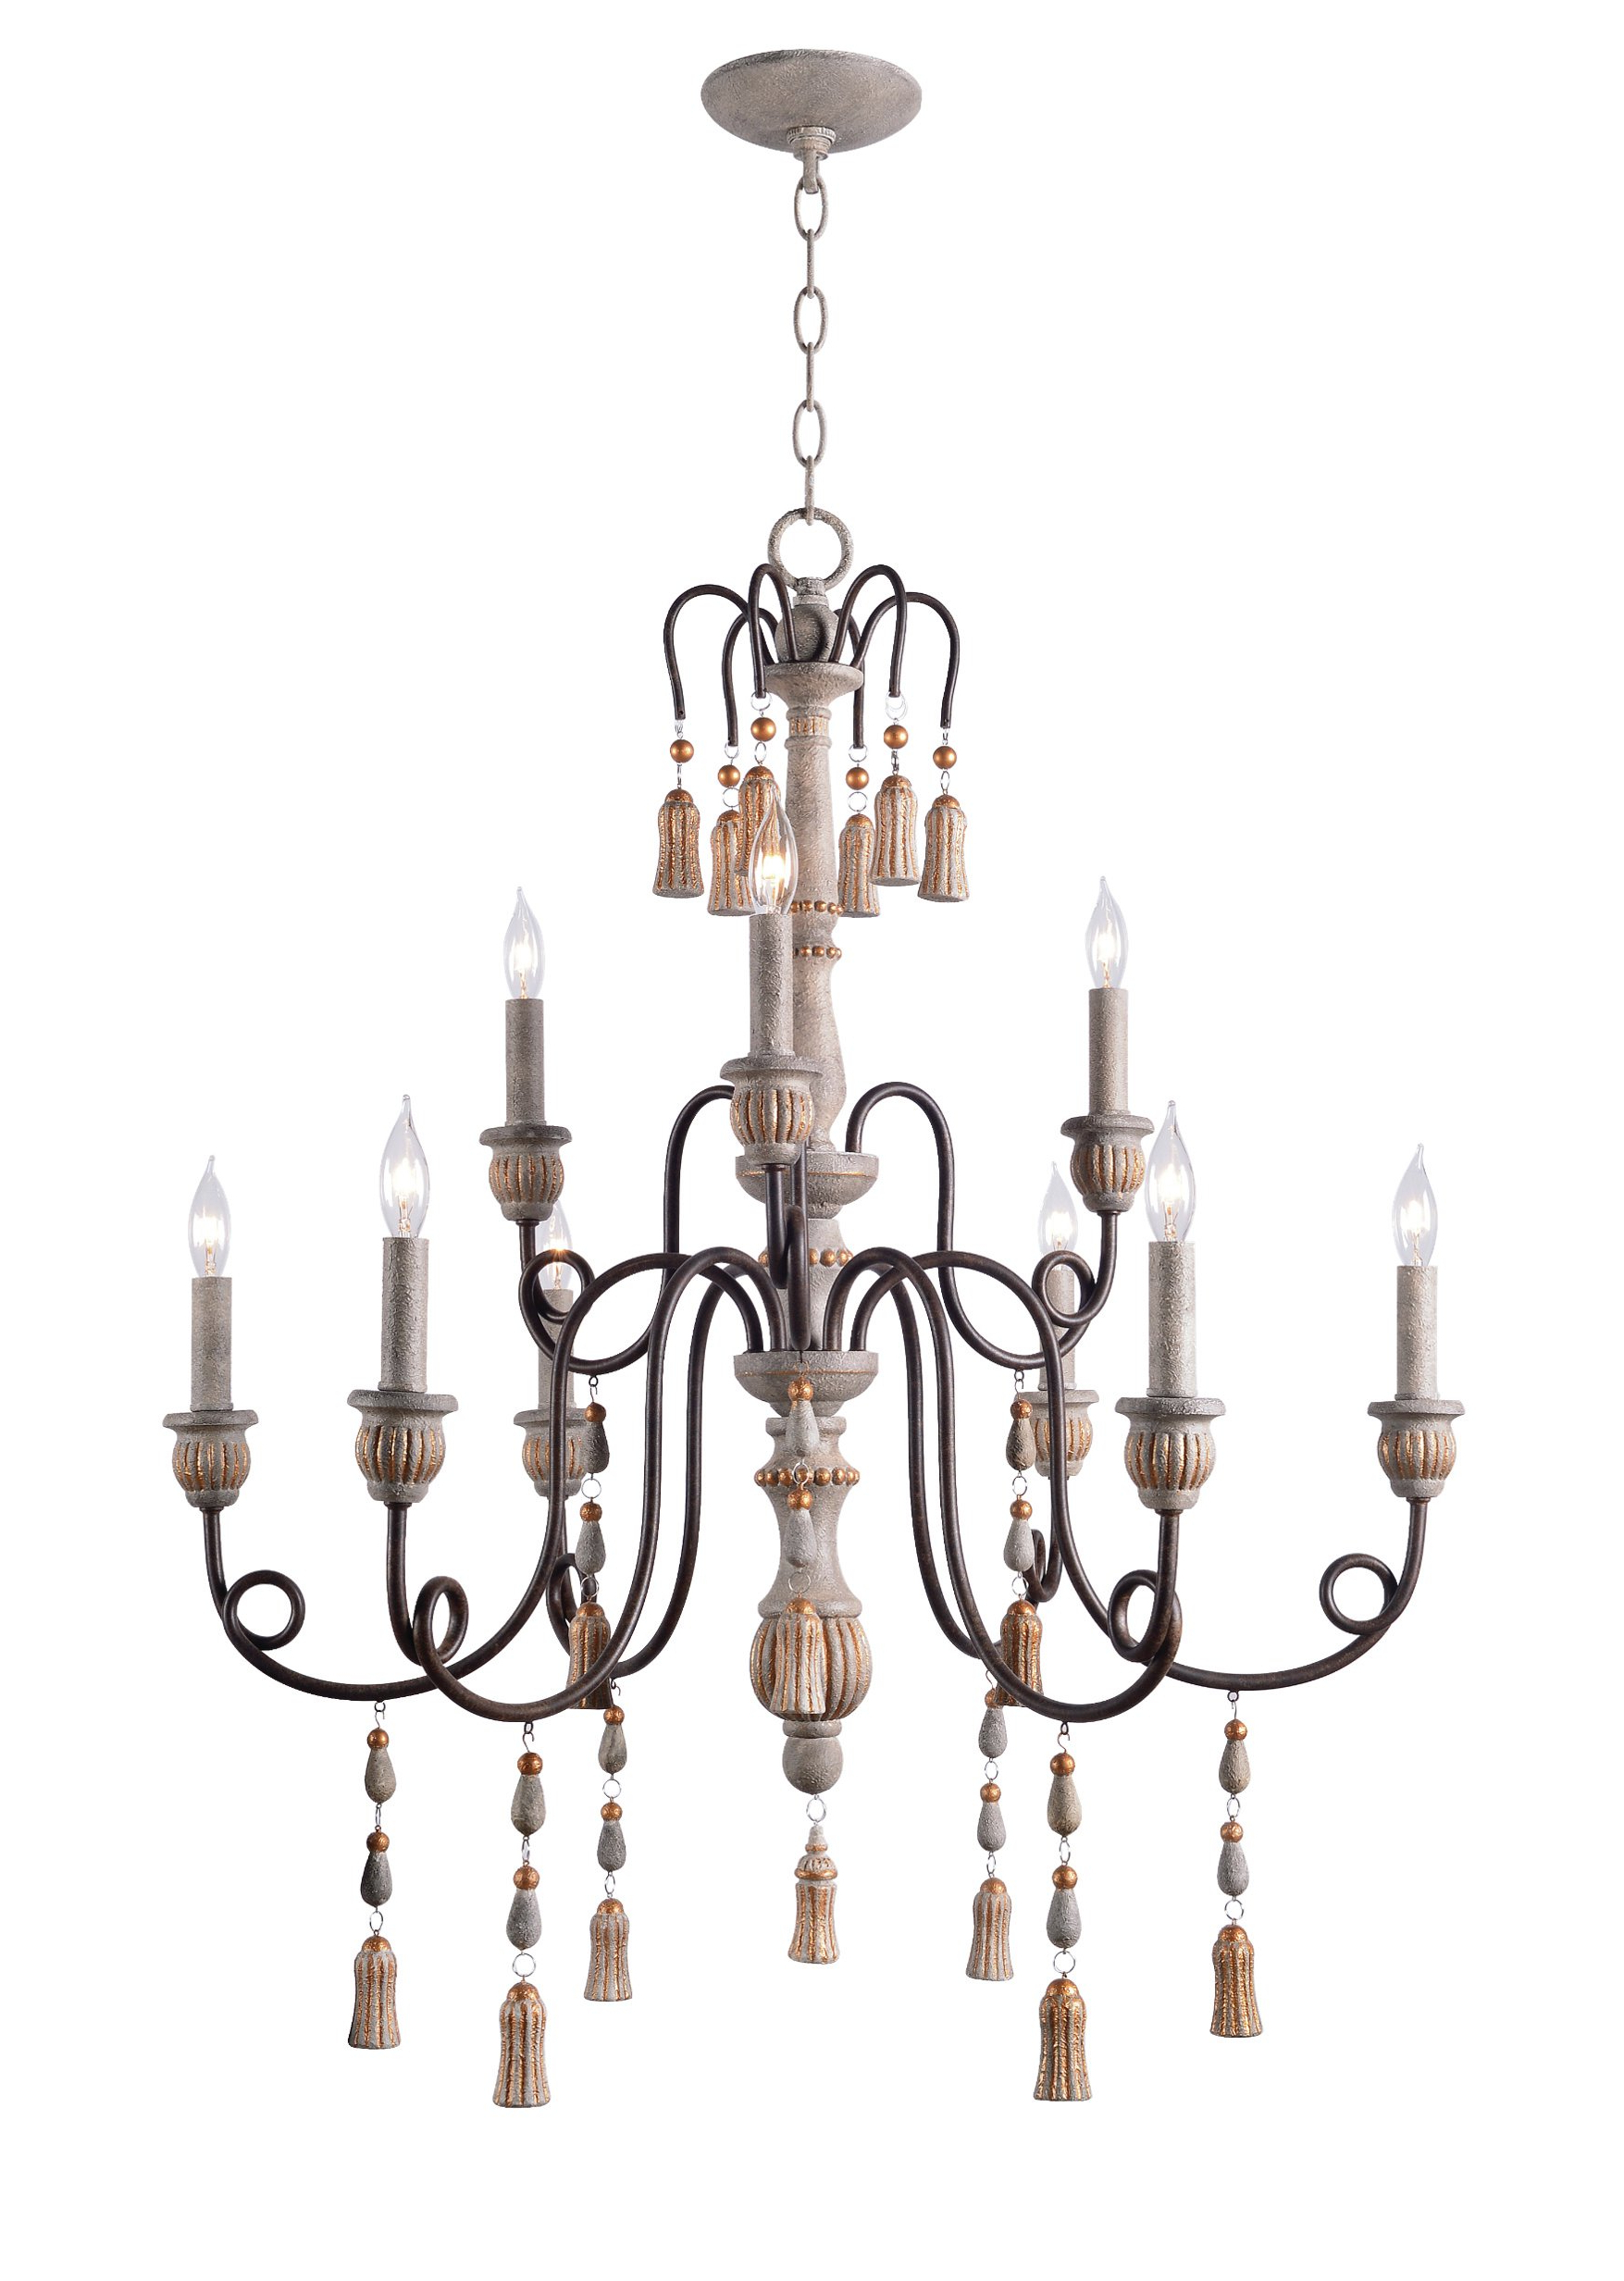 Florentina 5 Light Candle Style Chandeliers Regarding Most Recent Farmhouse & Rustic Ophelia & Co. Chandeliers (Gallery 19 of 20)